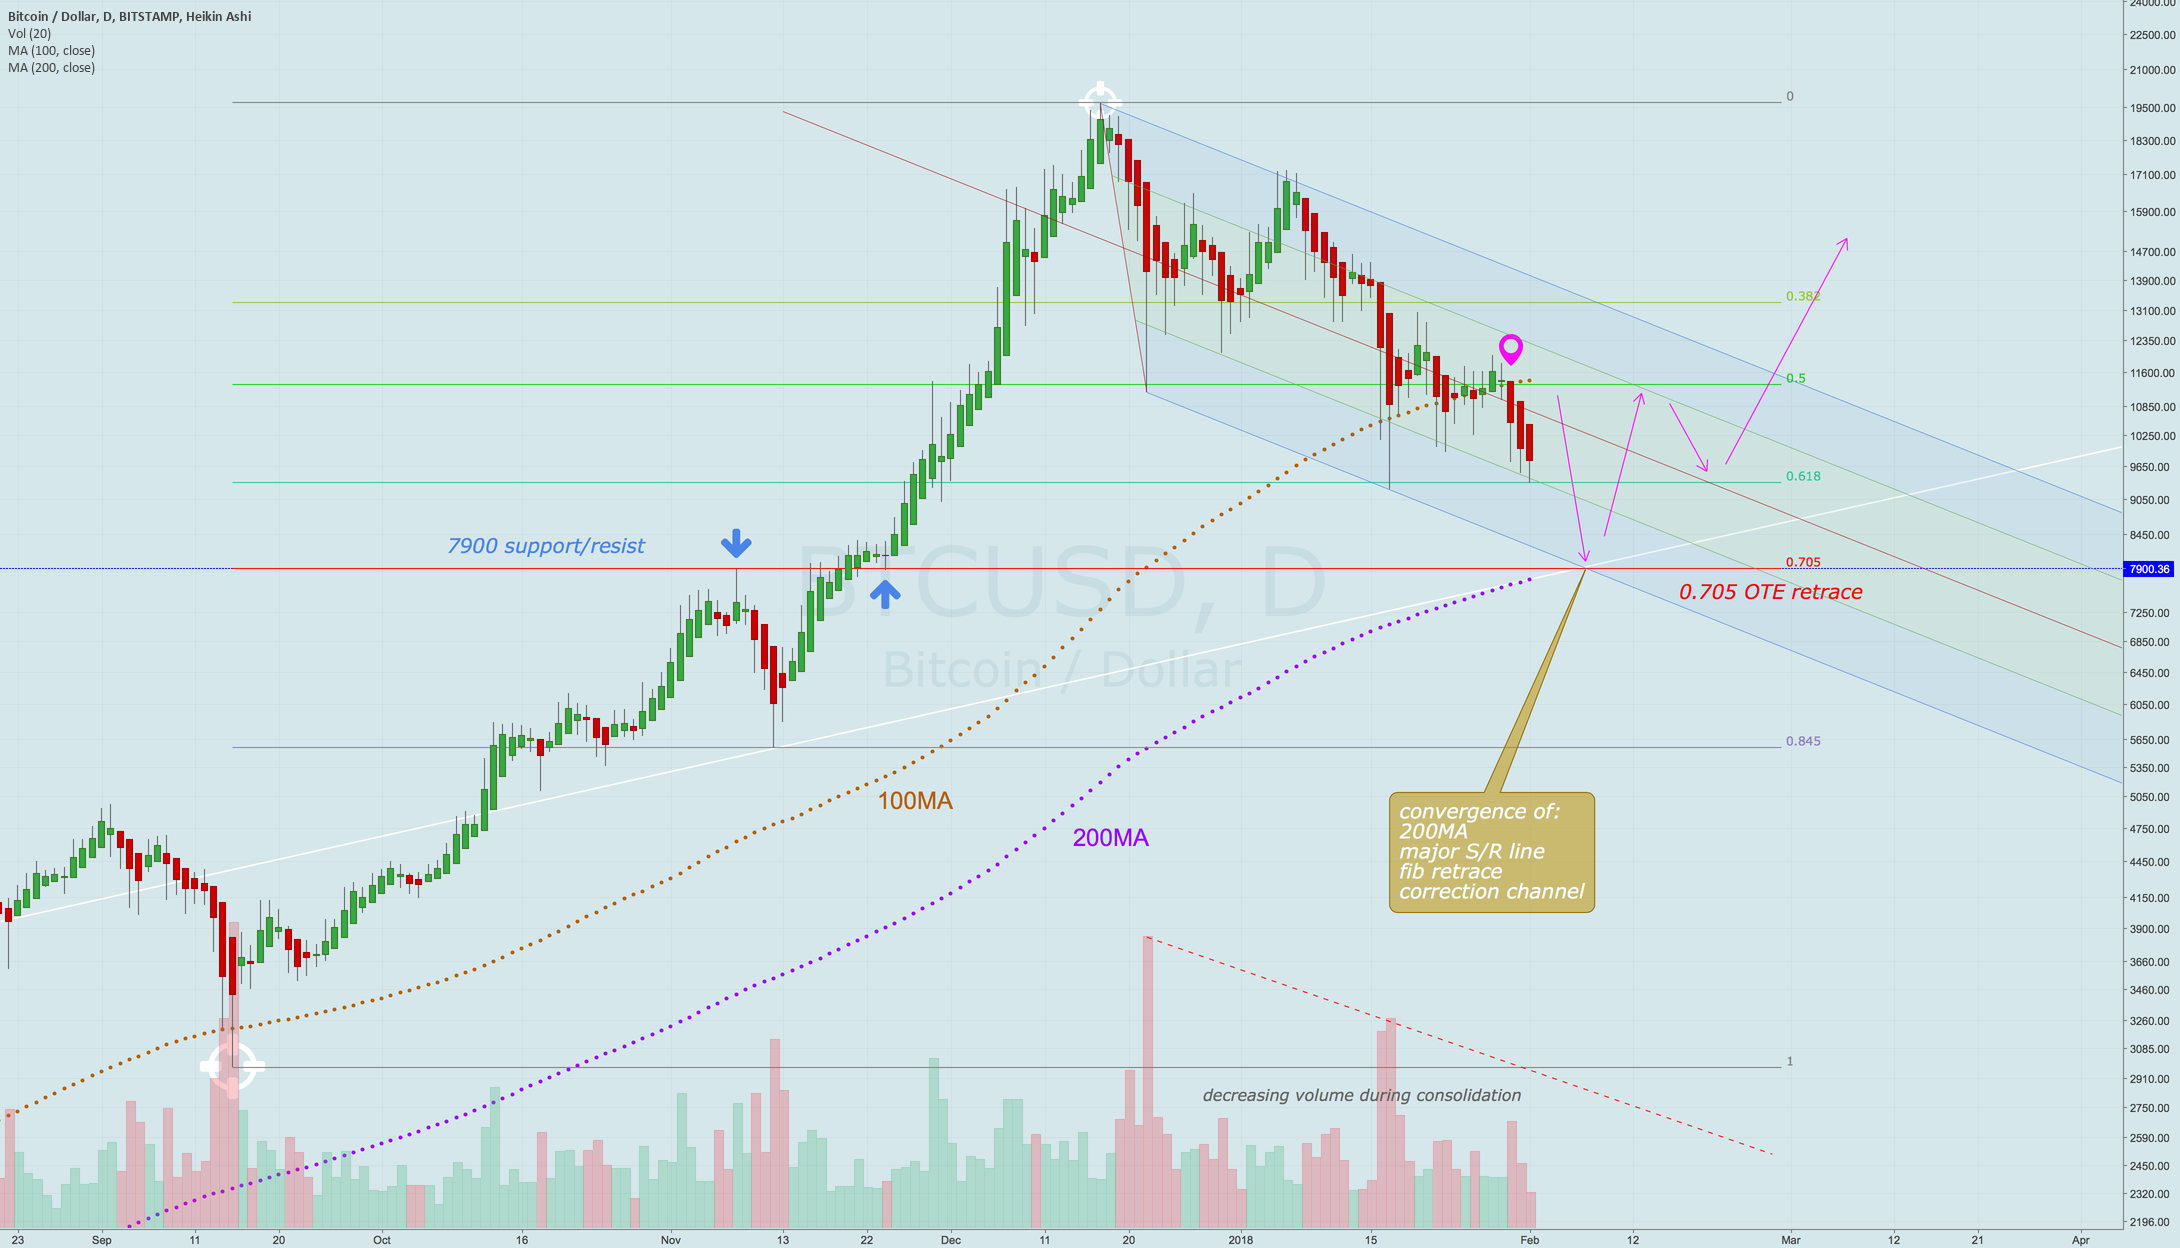 Correction continues to 8K, too heavy for bounces anymore